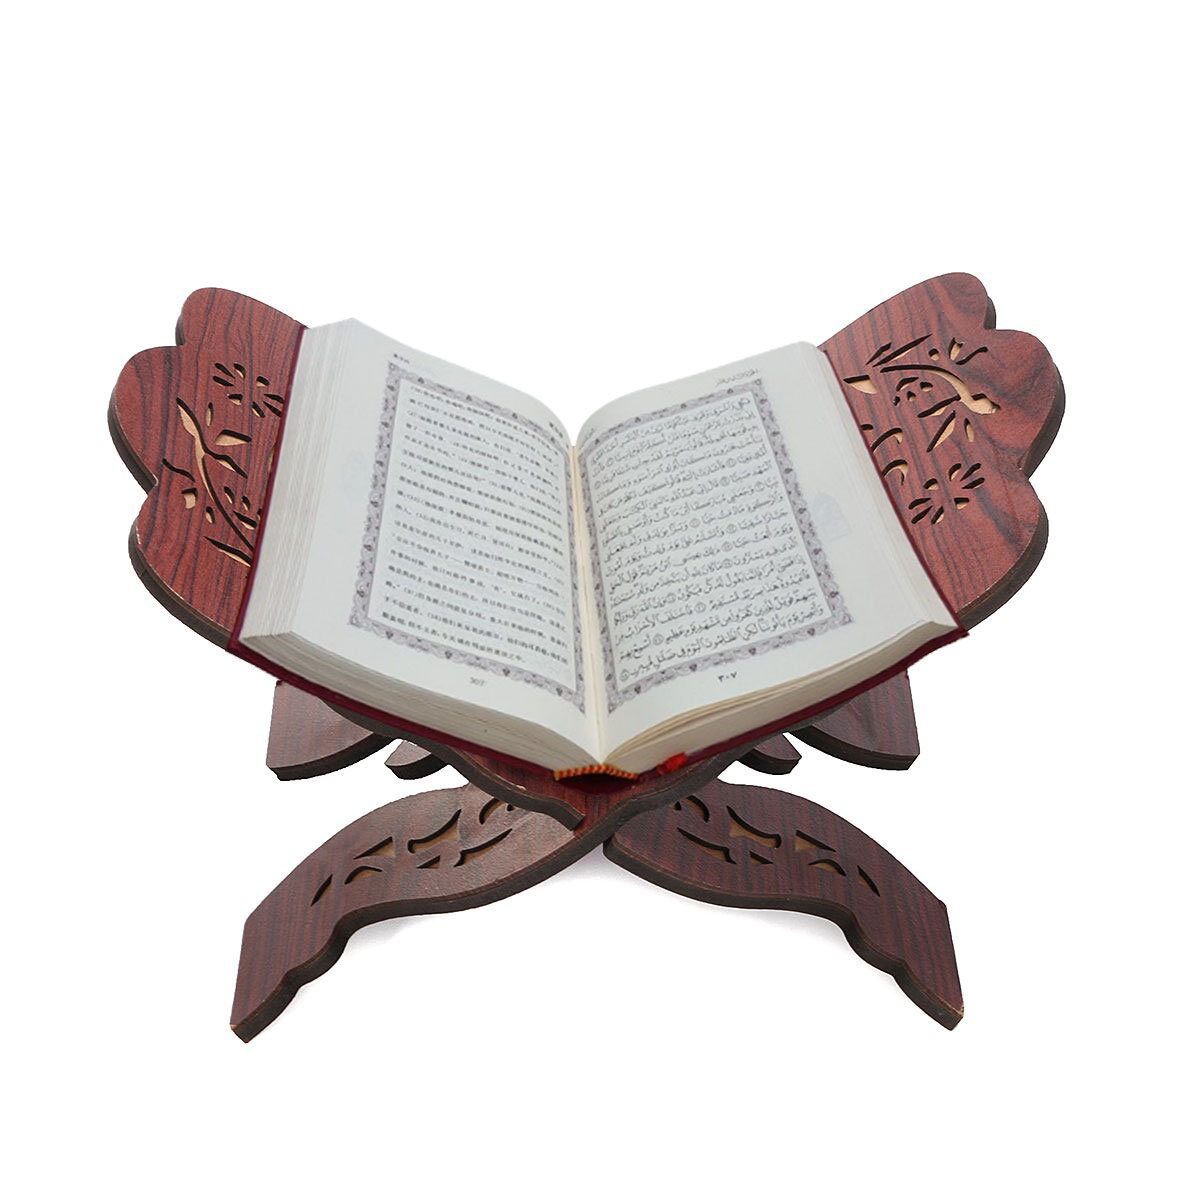 Office & School Supplies Desk Accessories & Organizer 28x20x15cm Wooden Book Stand Holder Quran Muslim Ramadan Allah Islamic Gift Bookends Removable Handmade Wood Book Decoration